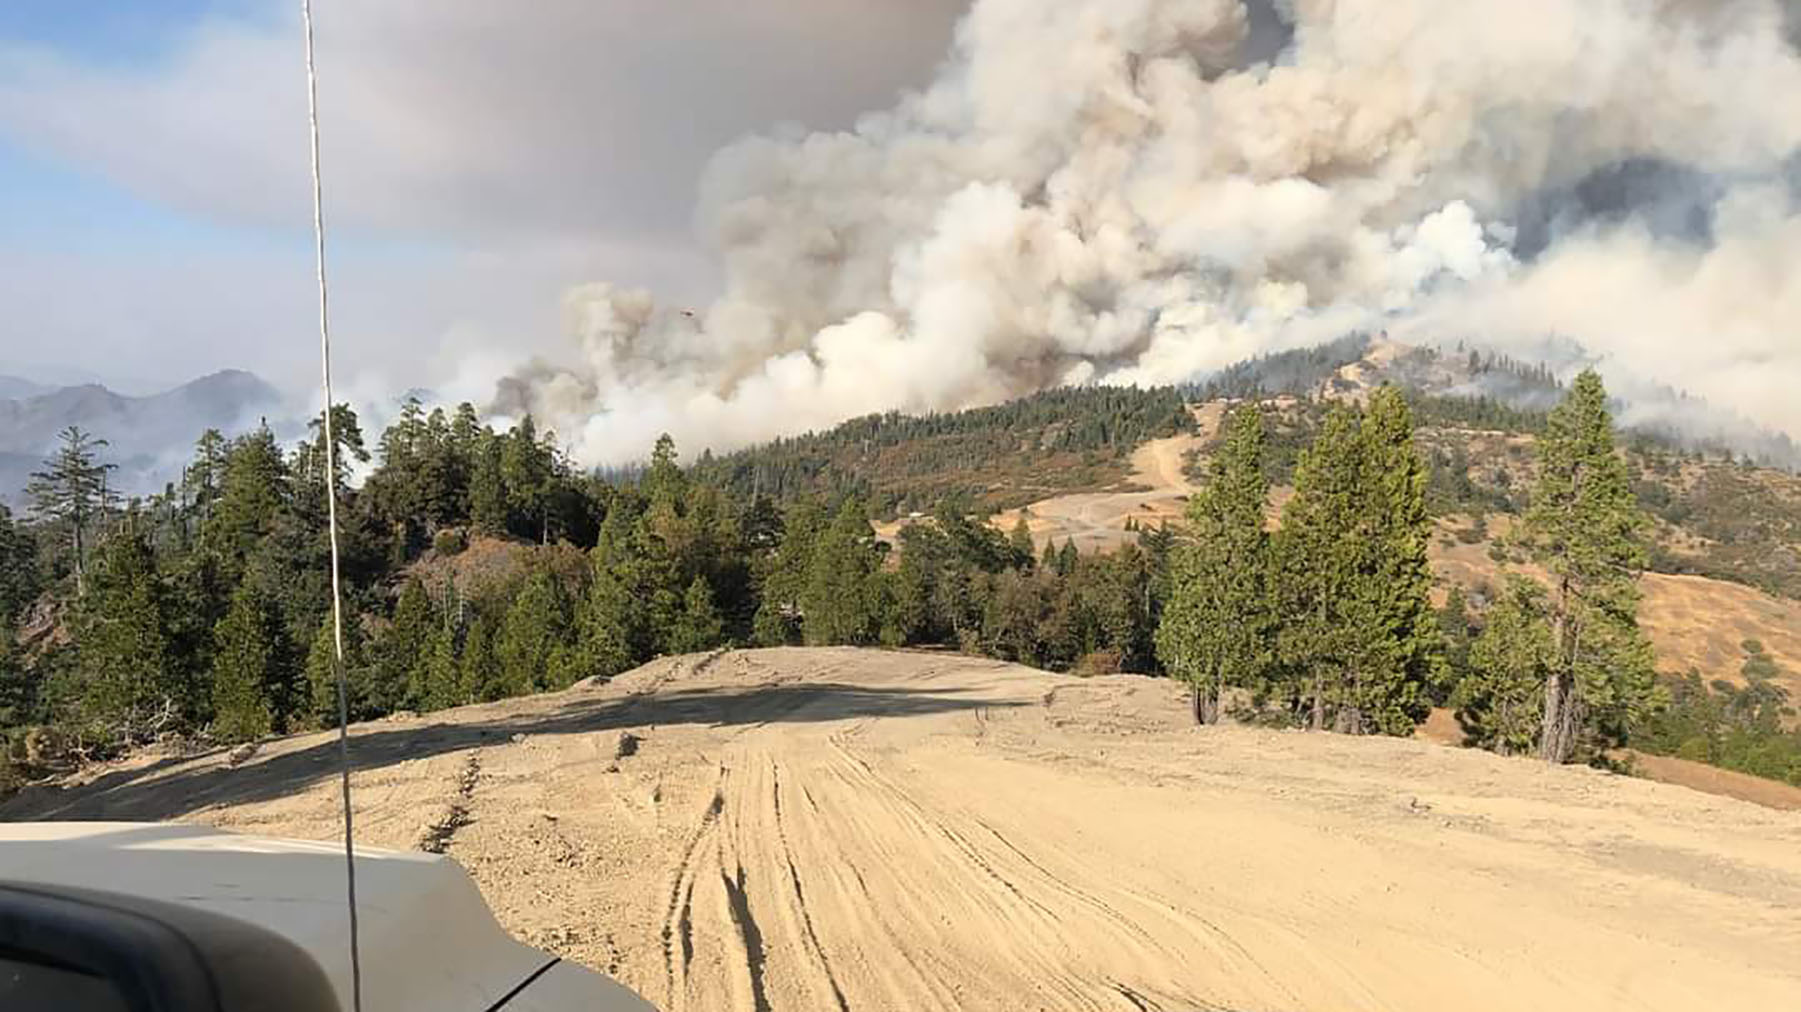 The view from a Mendocino County Sheriff's vehicle shows the billowing smoke of the August Complex Fire on the Trinity County line in Northern California on Oct. 3, 2020. The fire is one of a dozen burning across California, impacting air quality and displacing residents. (Photo courtesy of the Mendocino County Sheriff's Department)